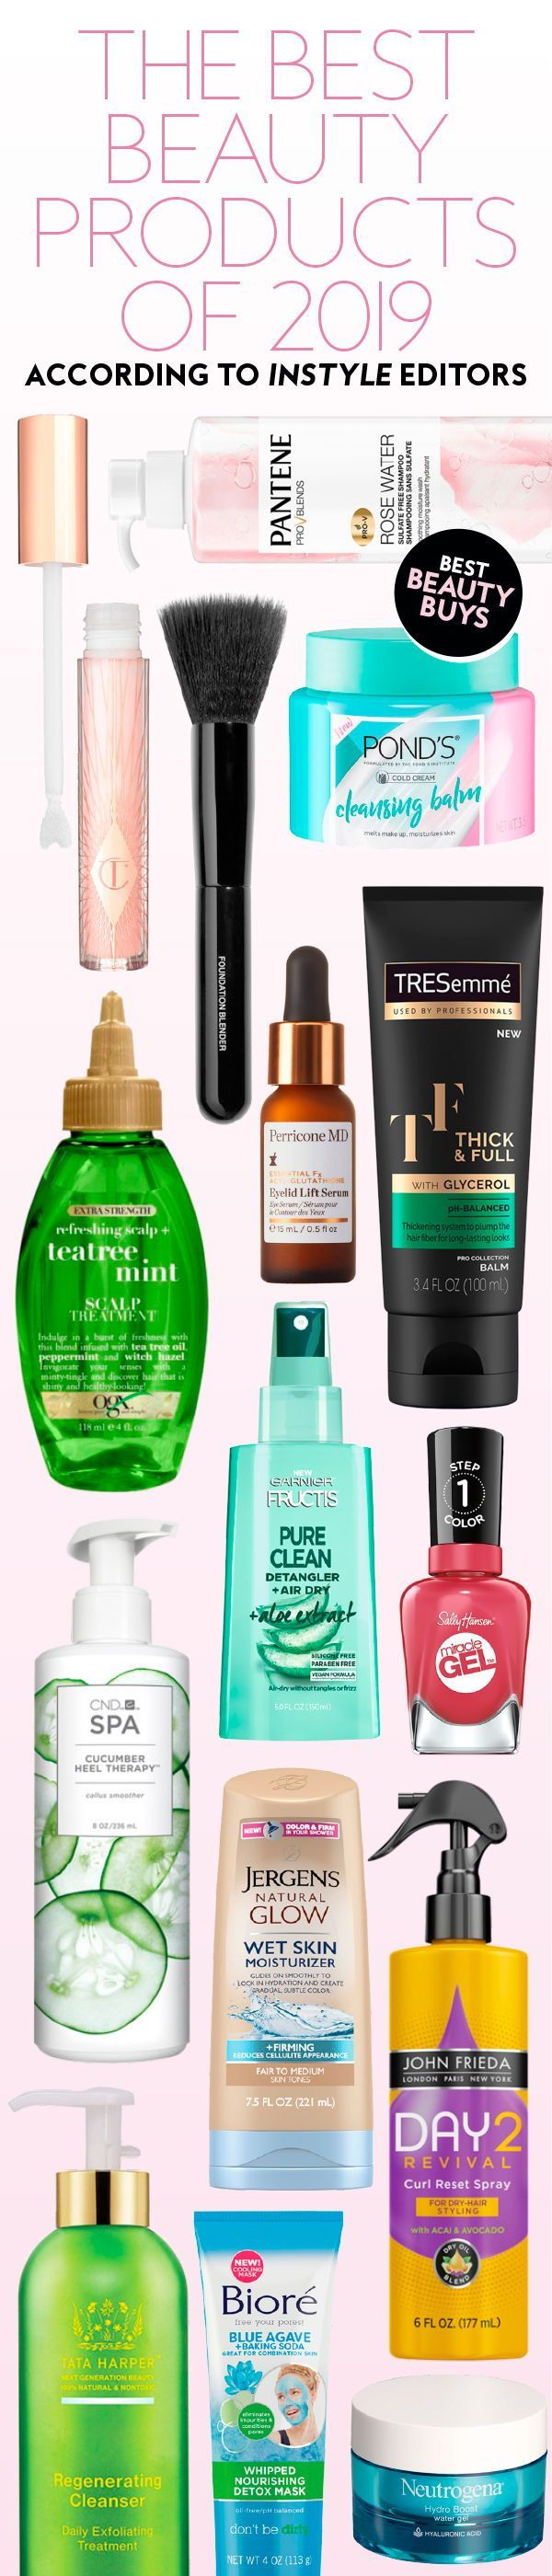 The best #beauty products of 2019, according to #instyle editors. #bestbeautybuys#2019beautytrends#editorspicks